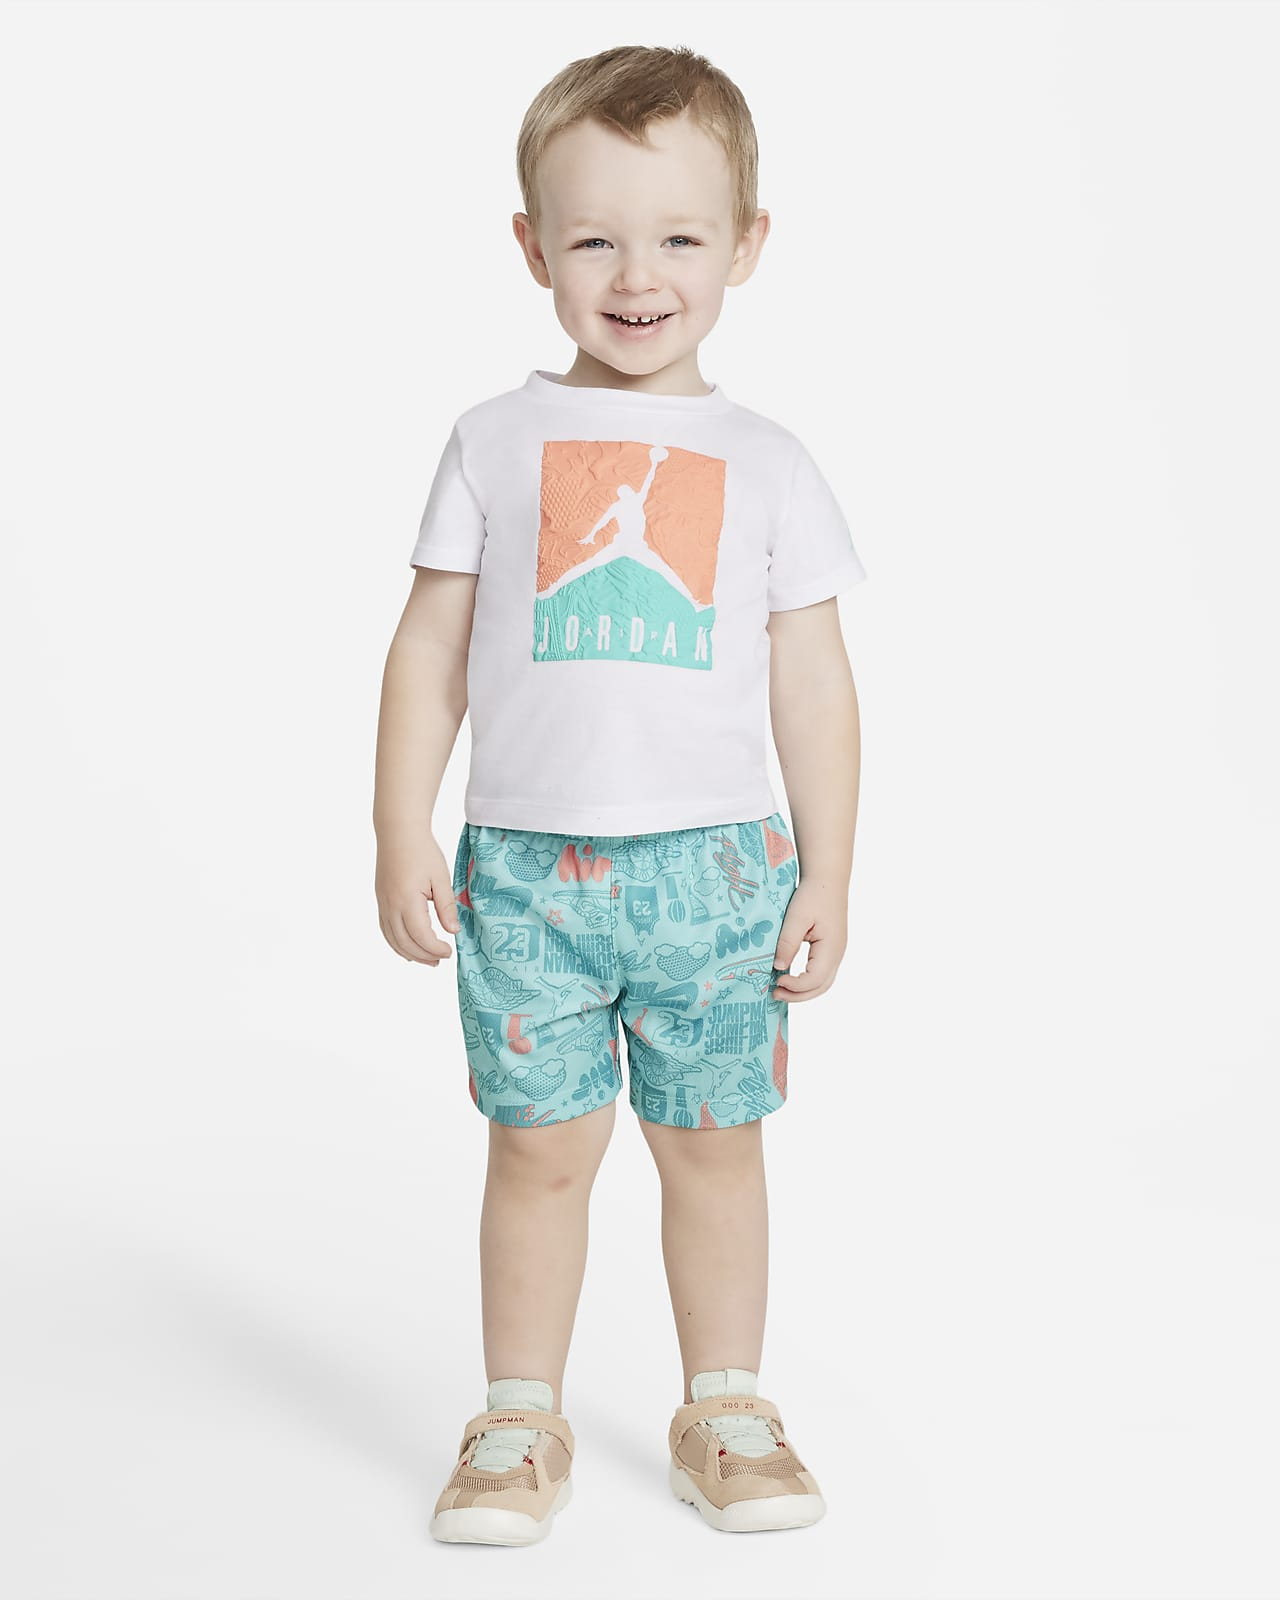 Jordan Baby (12-24M) T-Shirt and Shorts Set